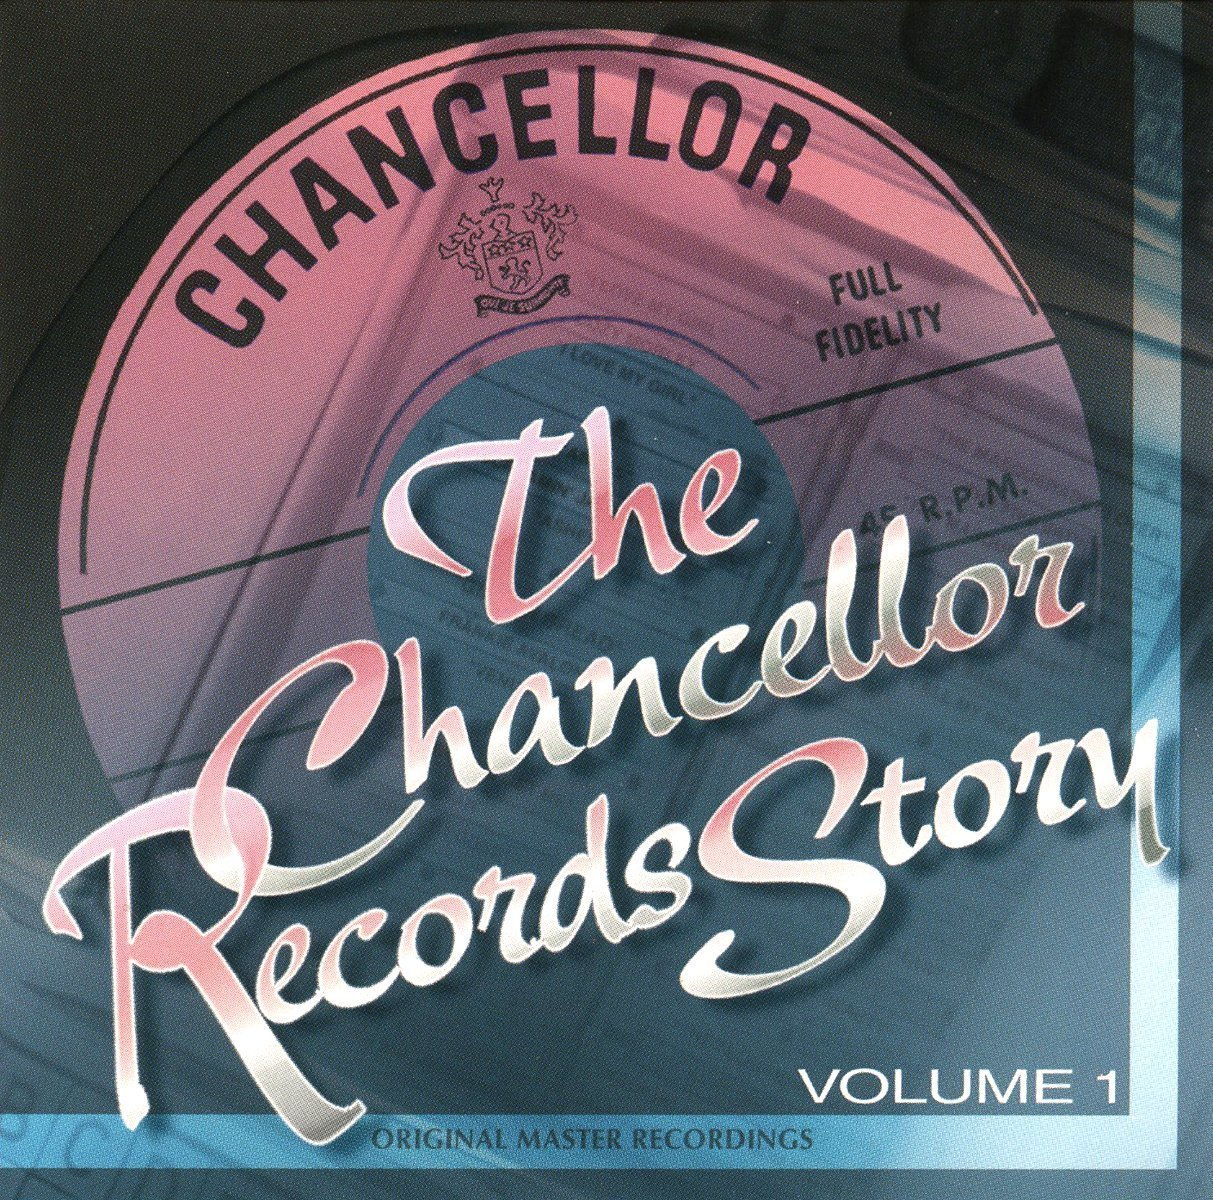 VARIOUS ARTISTS - The Chancellor Records Story, Volume 1 - Amazon ...